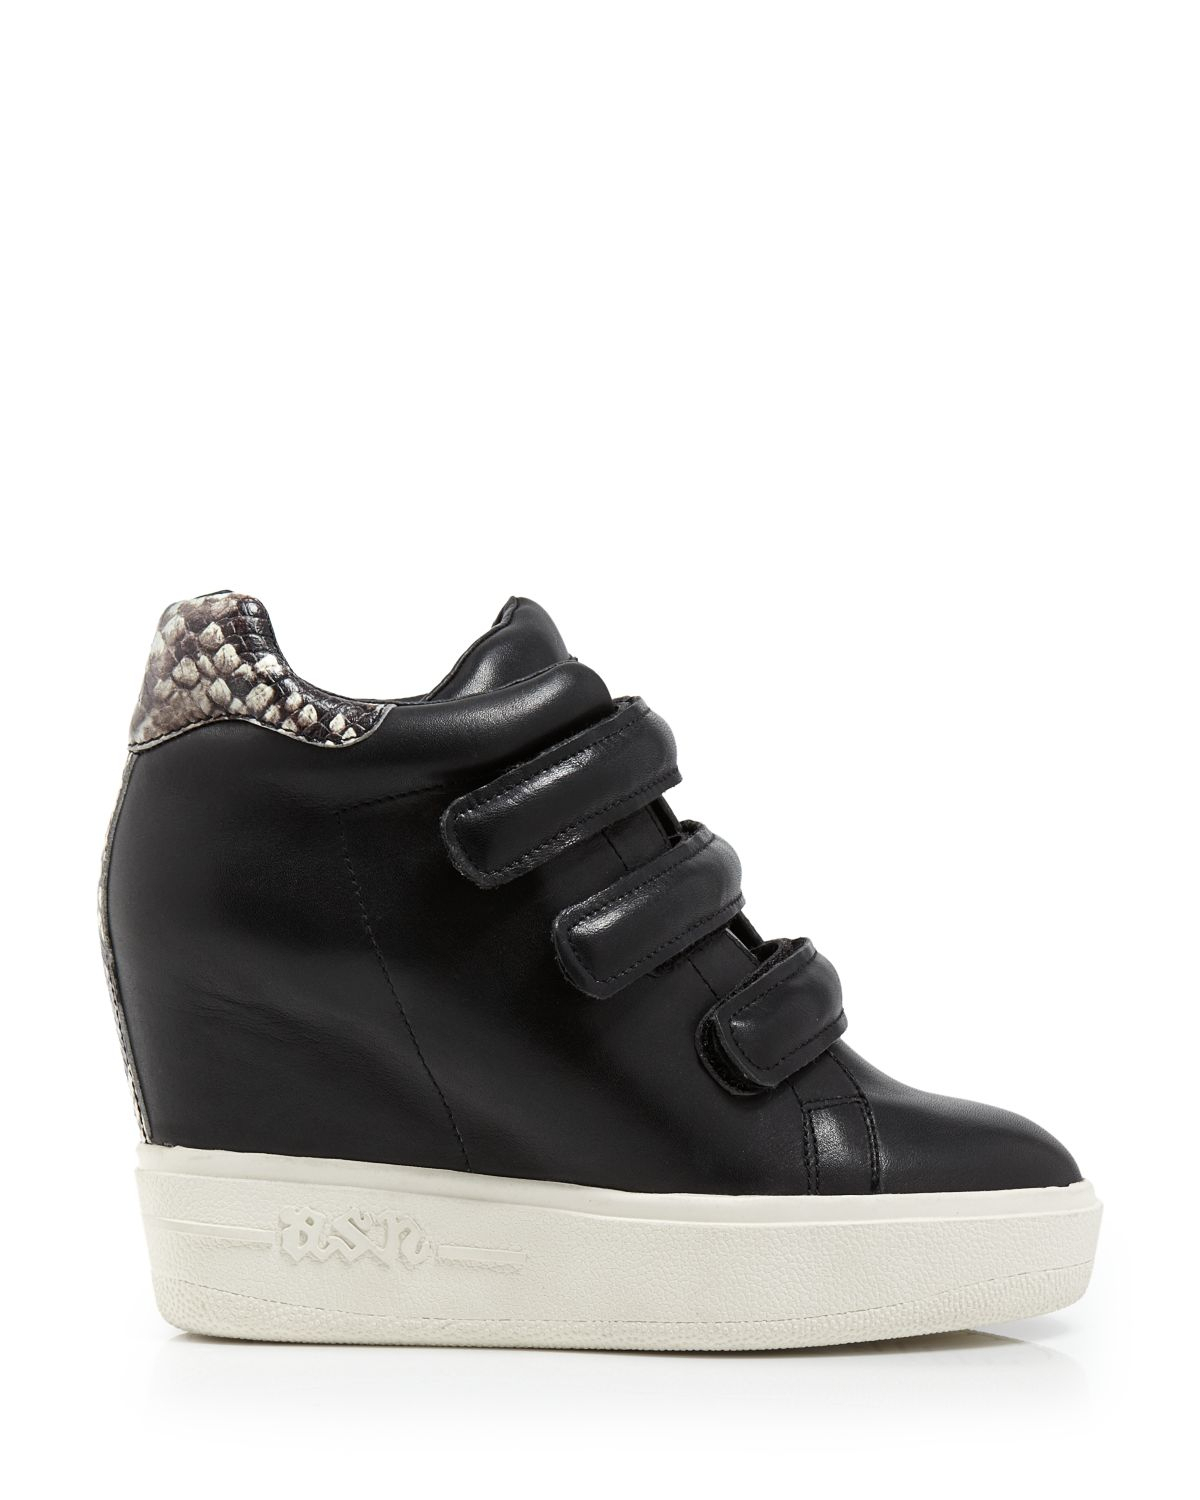 Nike Wedges Sneakers Black